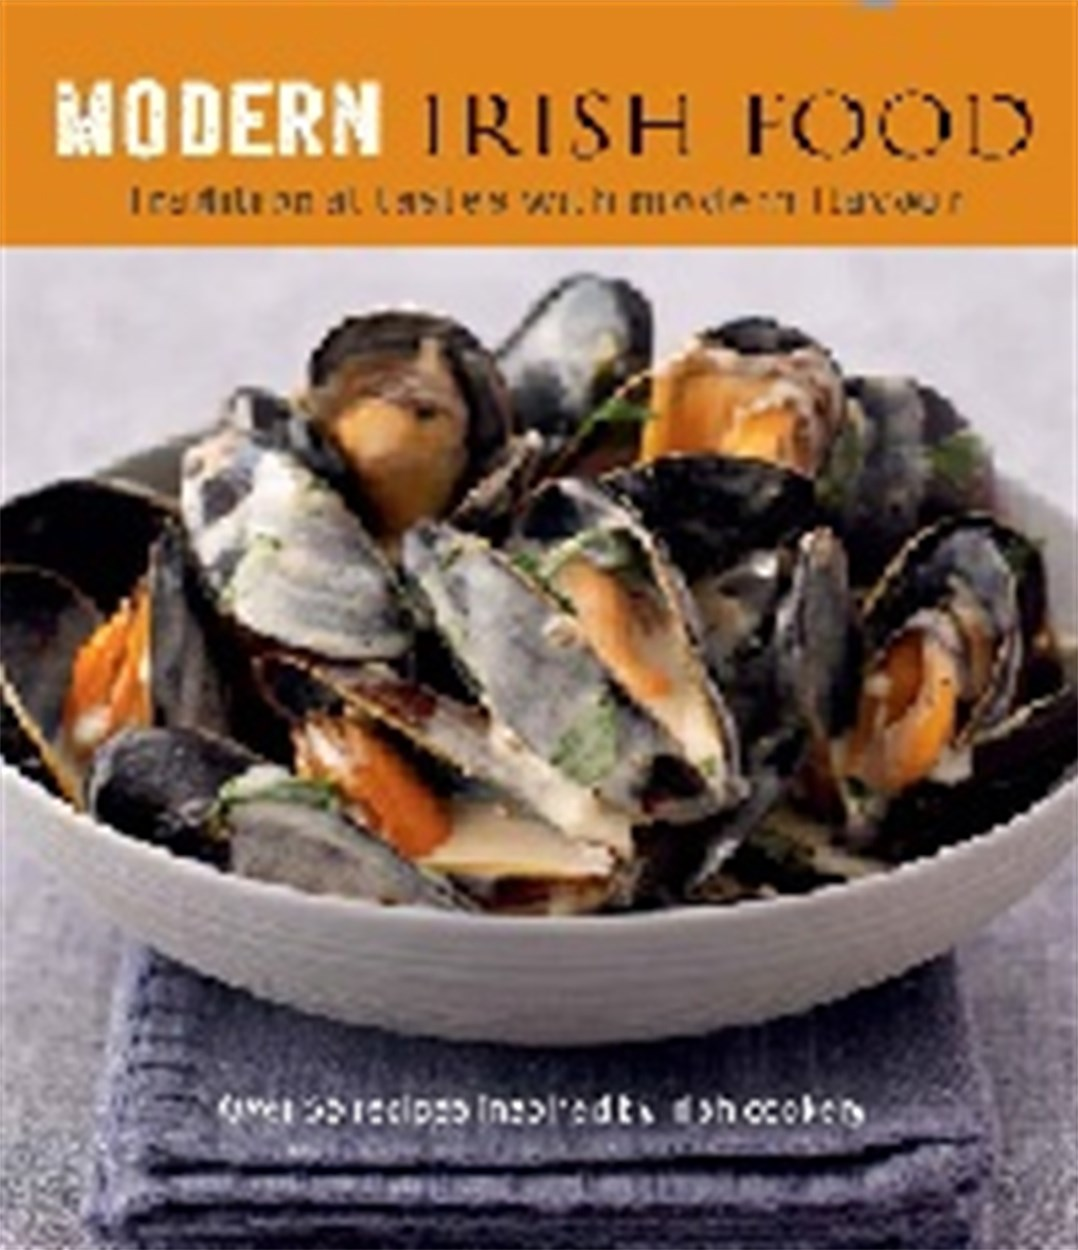 Modern Irish Food